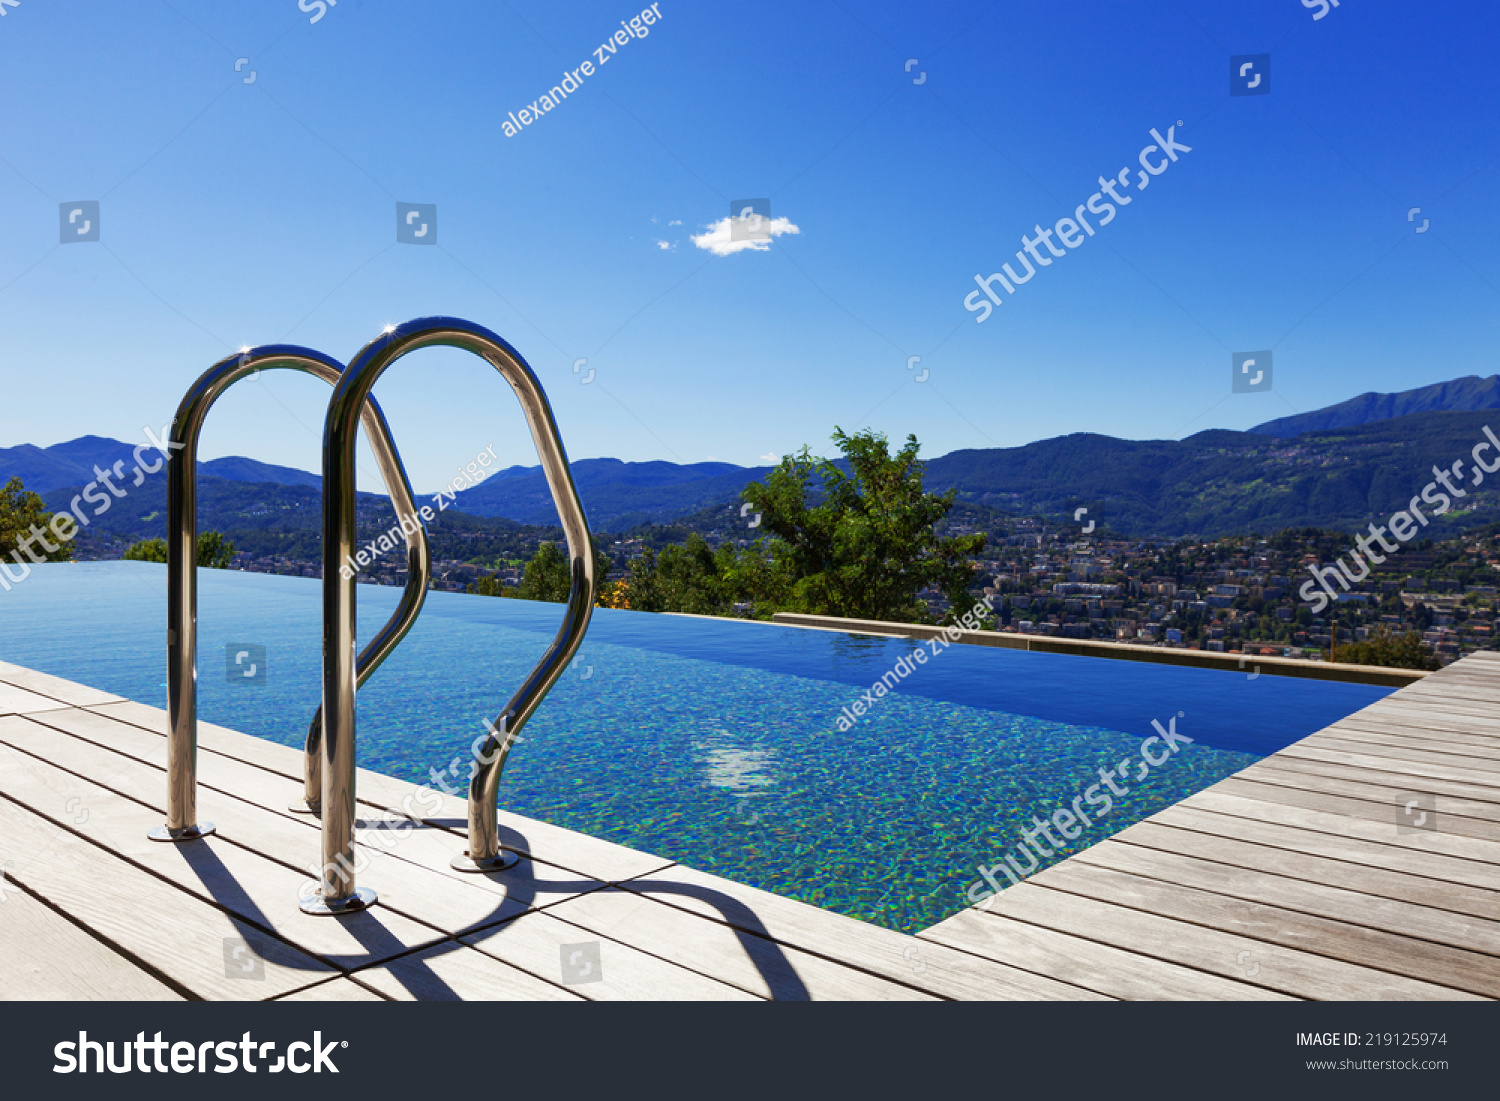 Grab Bars Ladder Swimming Pool Outdoor Stock Photo